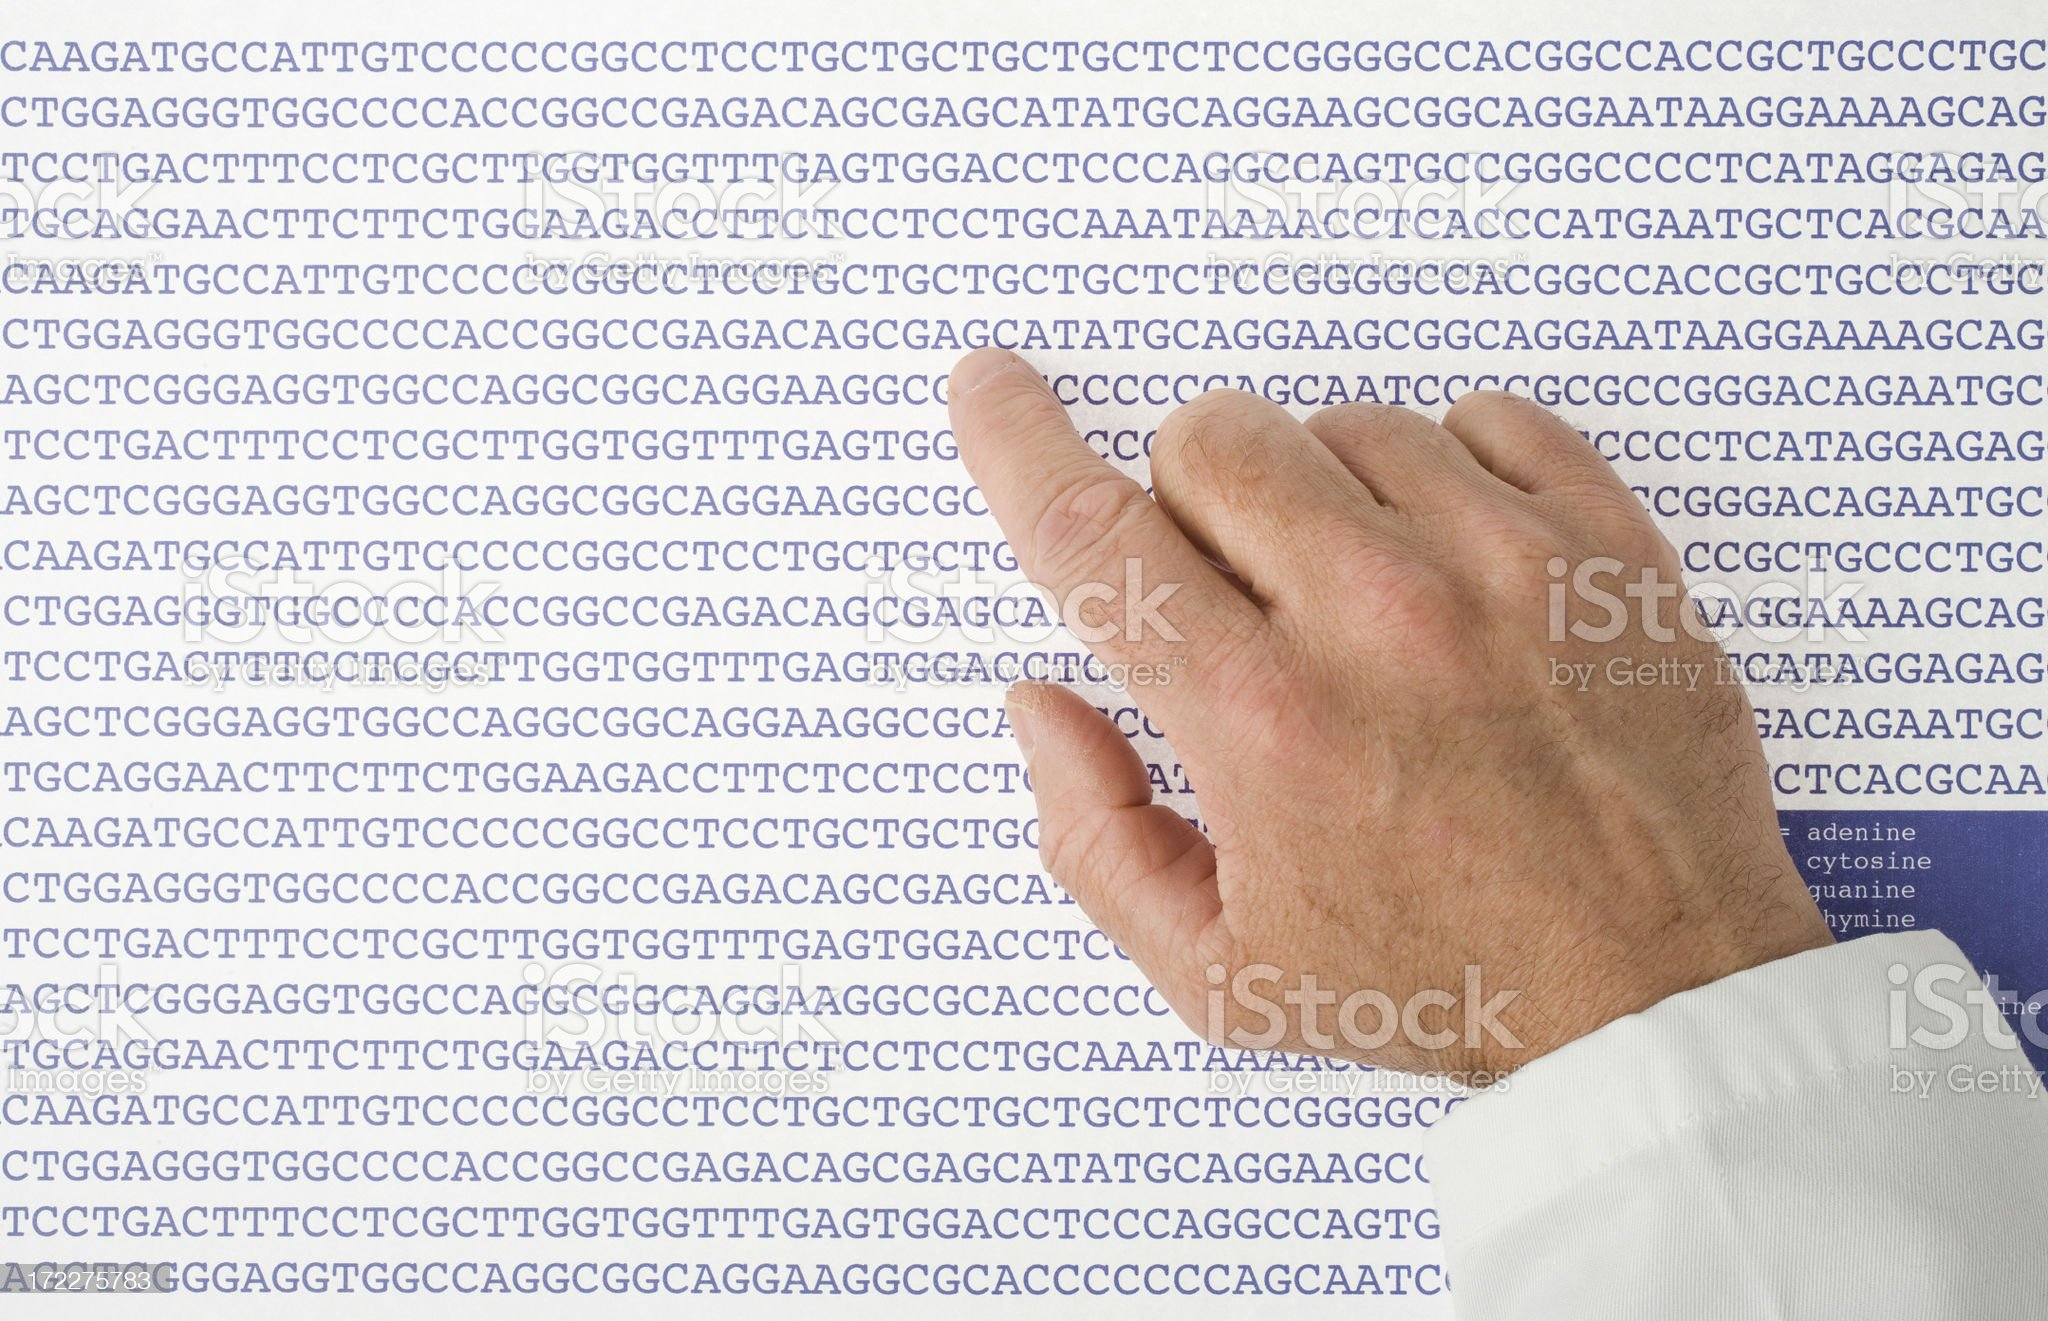 Sequences of DNA royalty-free stock photo